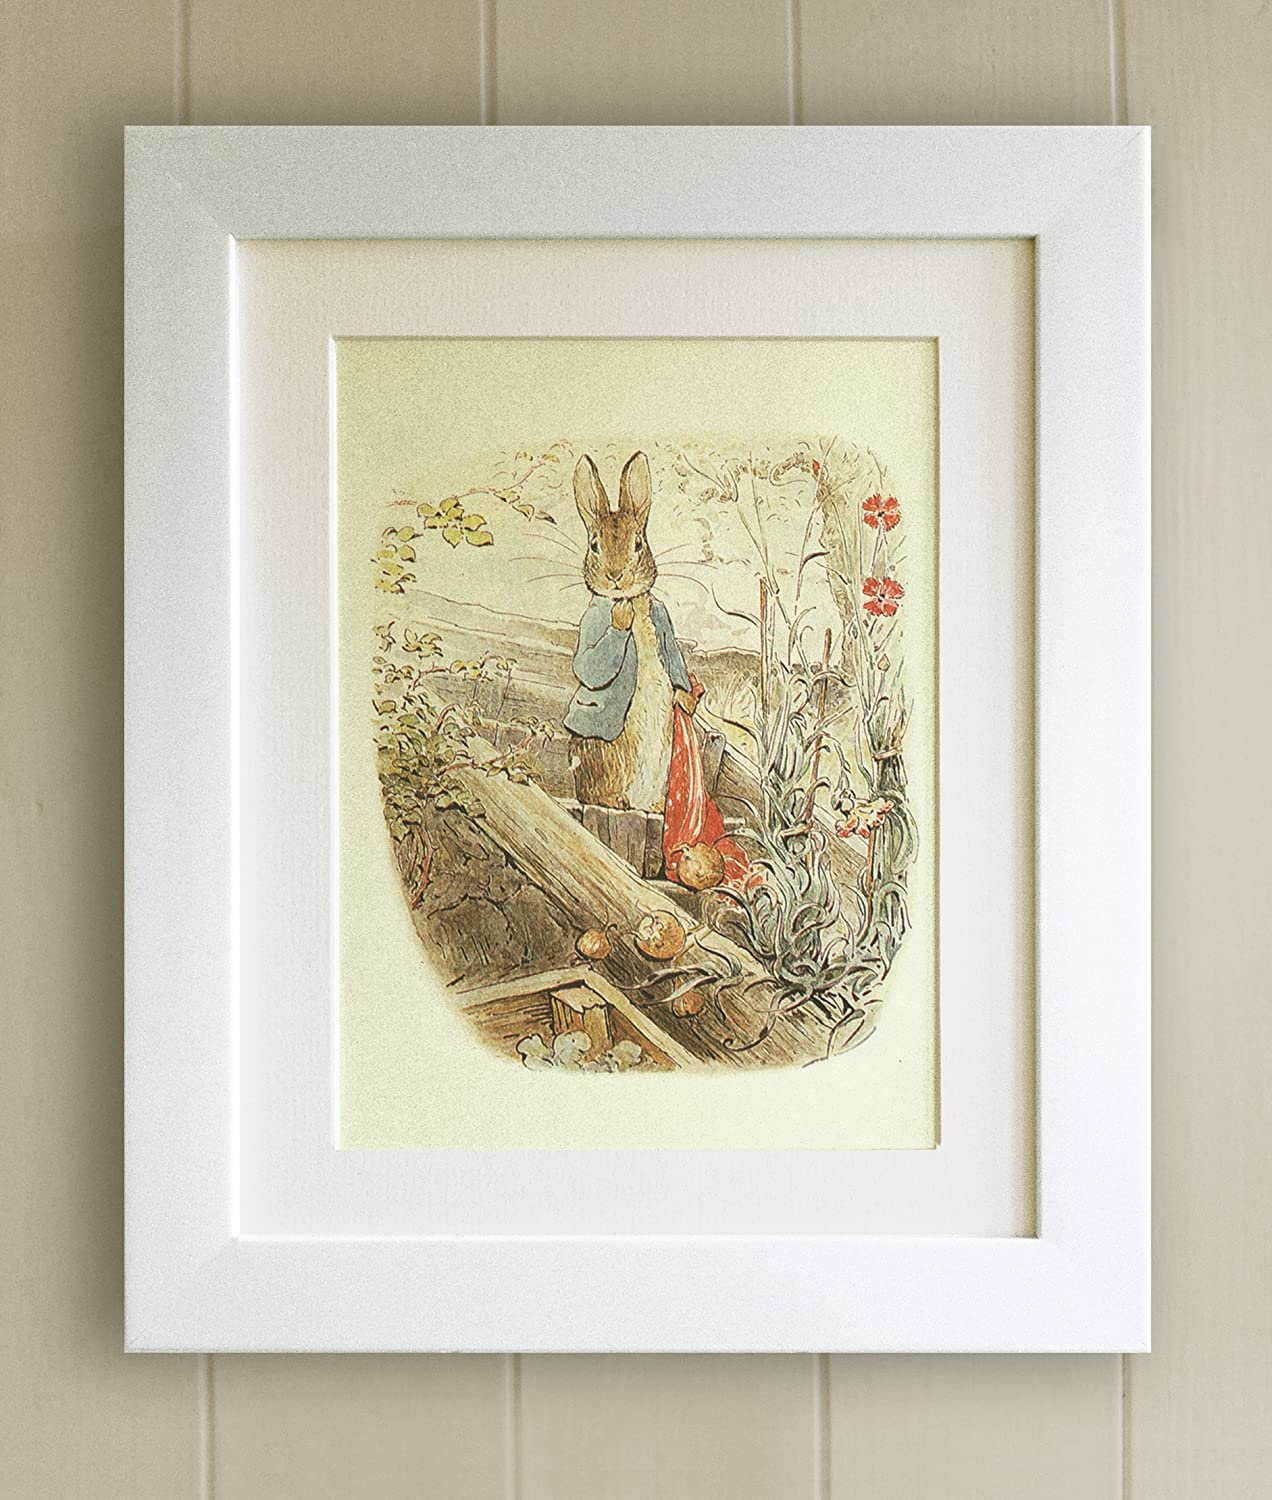 Beatrix Potter FRAMED PRINT, New Baby/Birth, Christening, Baby Shower, Nursery Picture Gift, Peter Rabbit and Friends (10